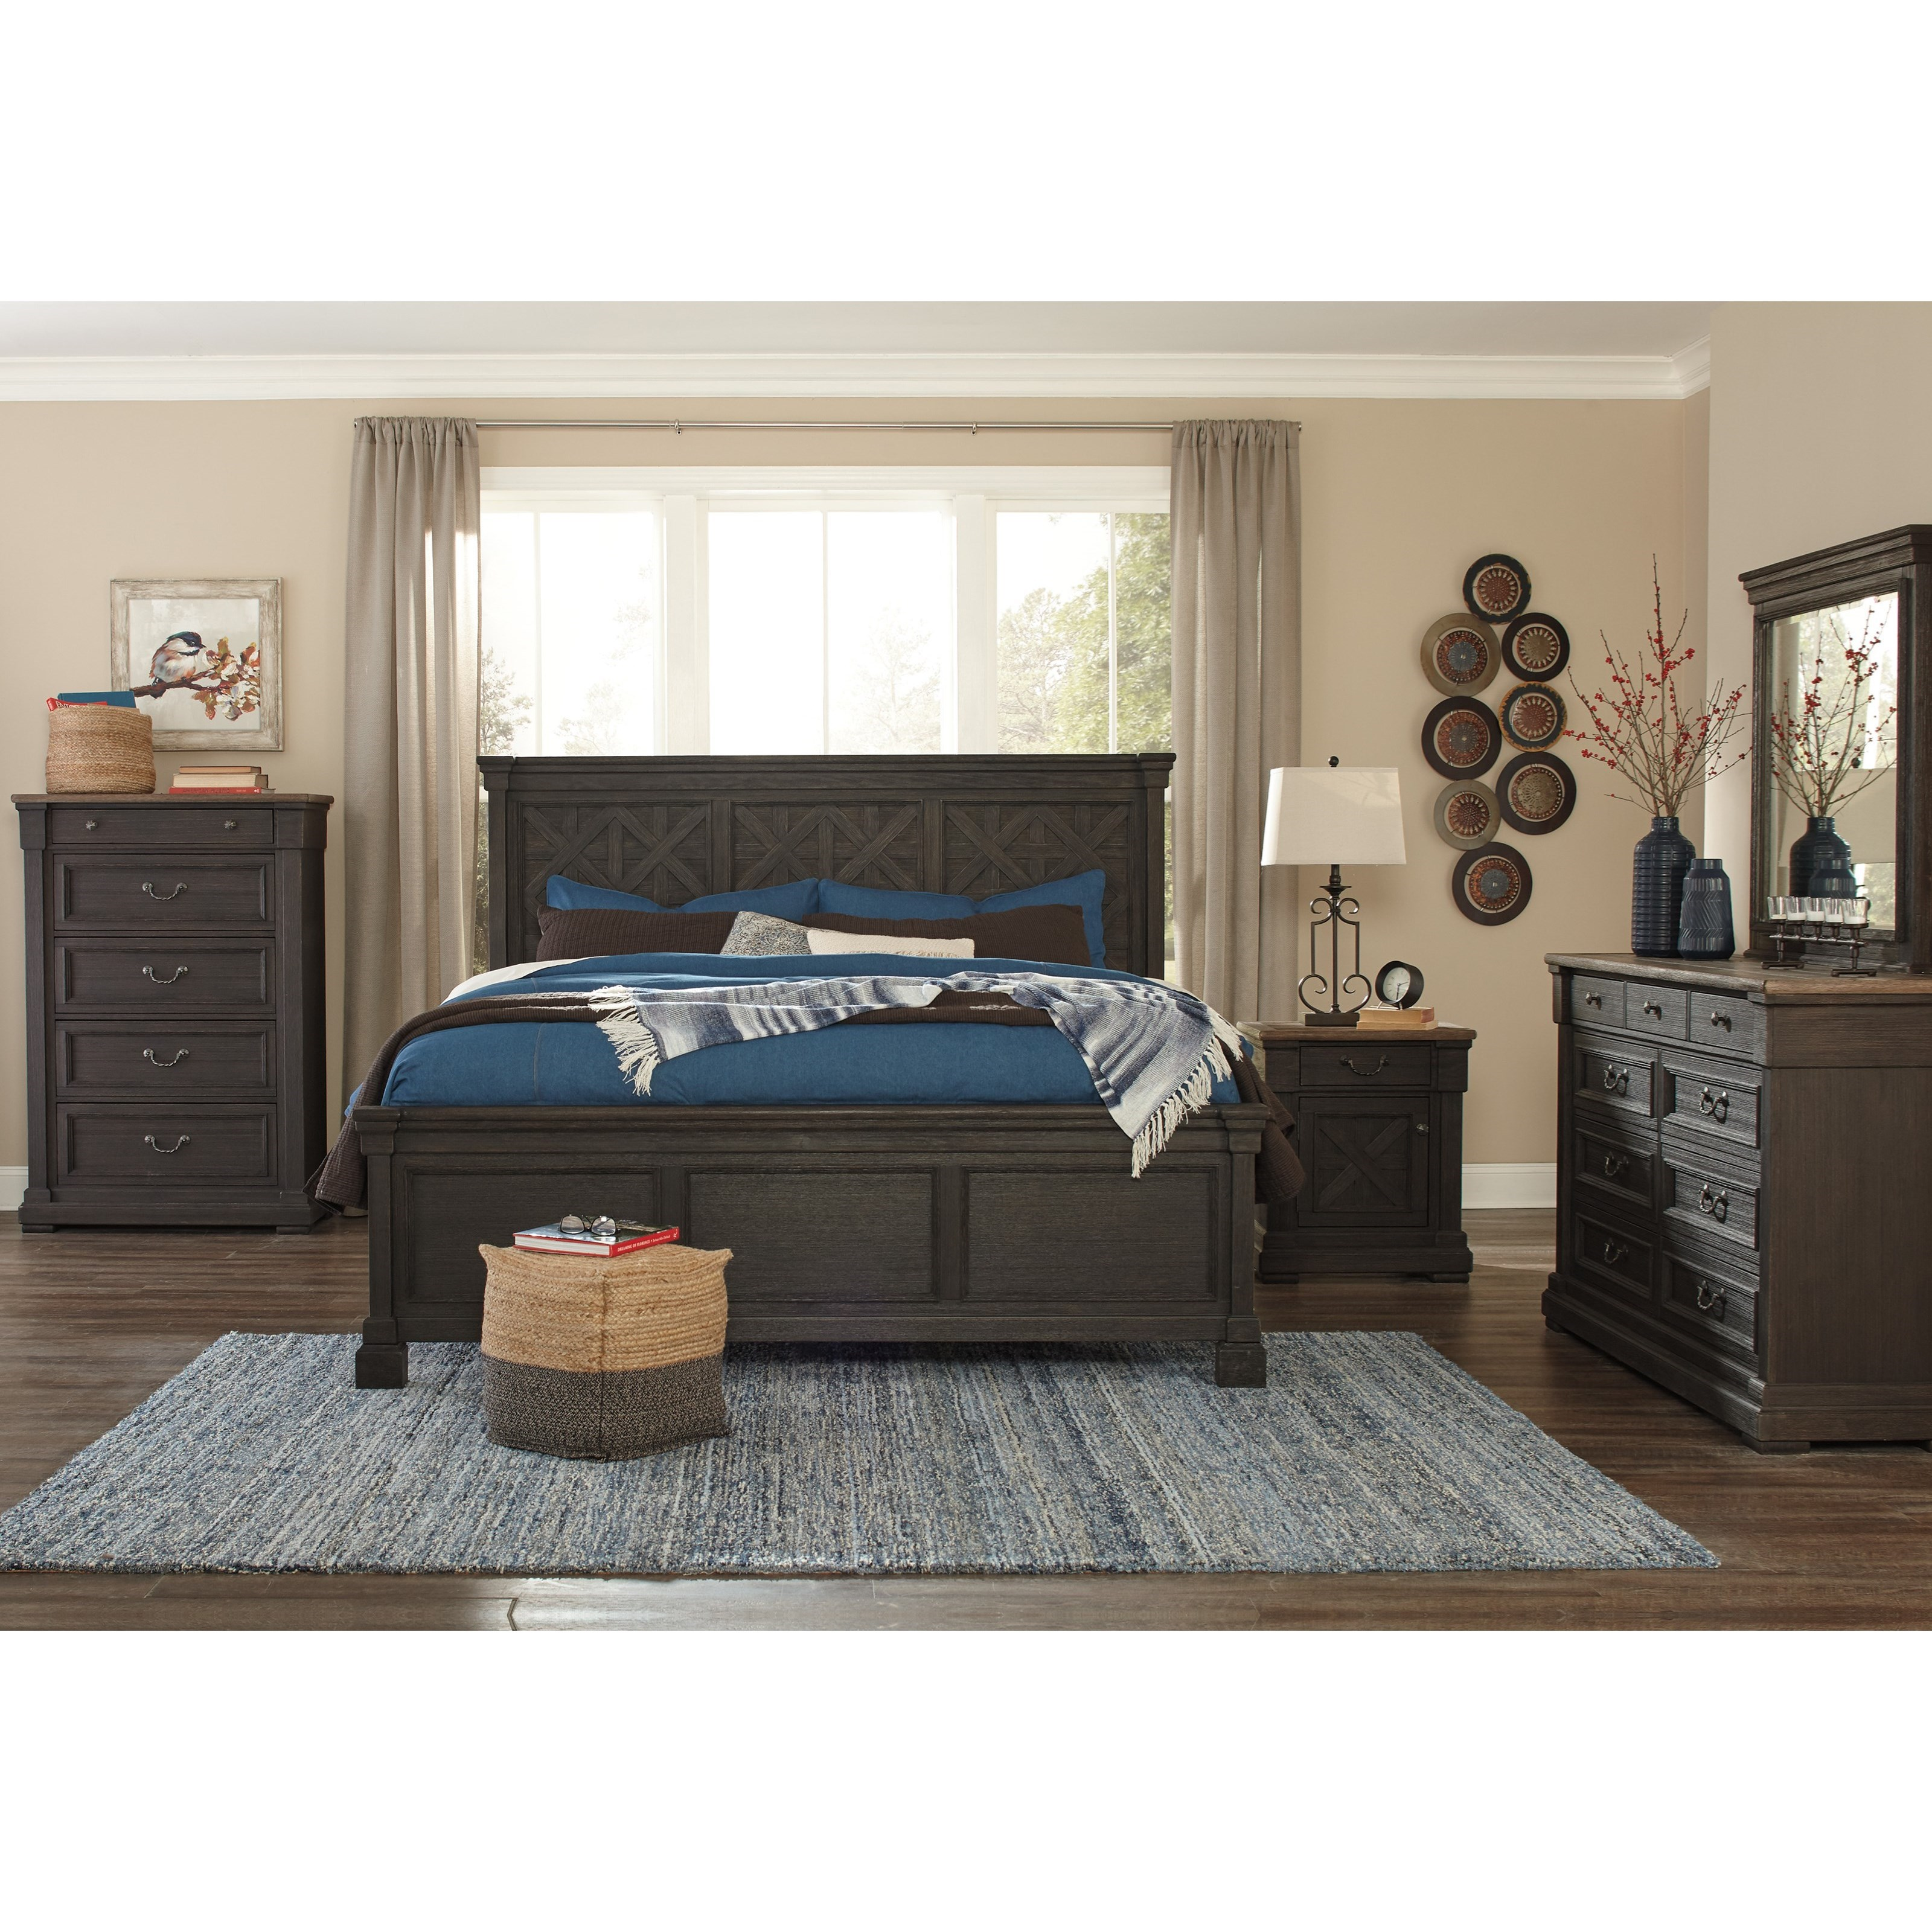 Signature Design By Ashley Tyler Creek Queen Bedroom Group Miskelly Furniture Bedroom Groups